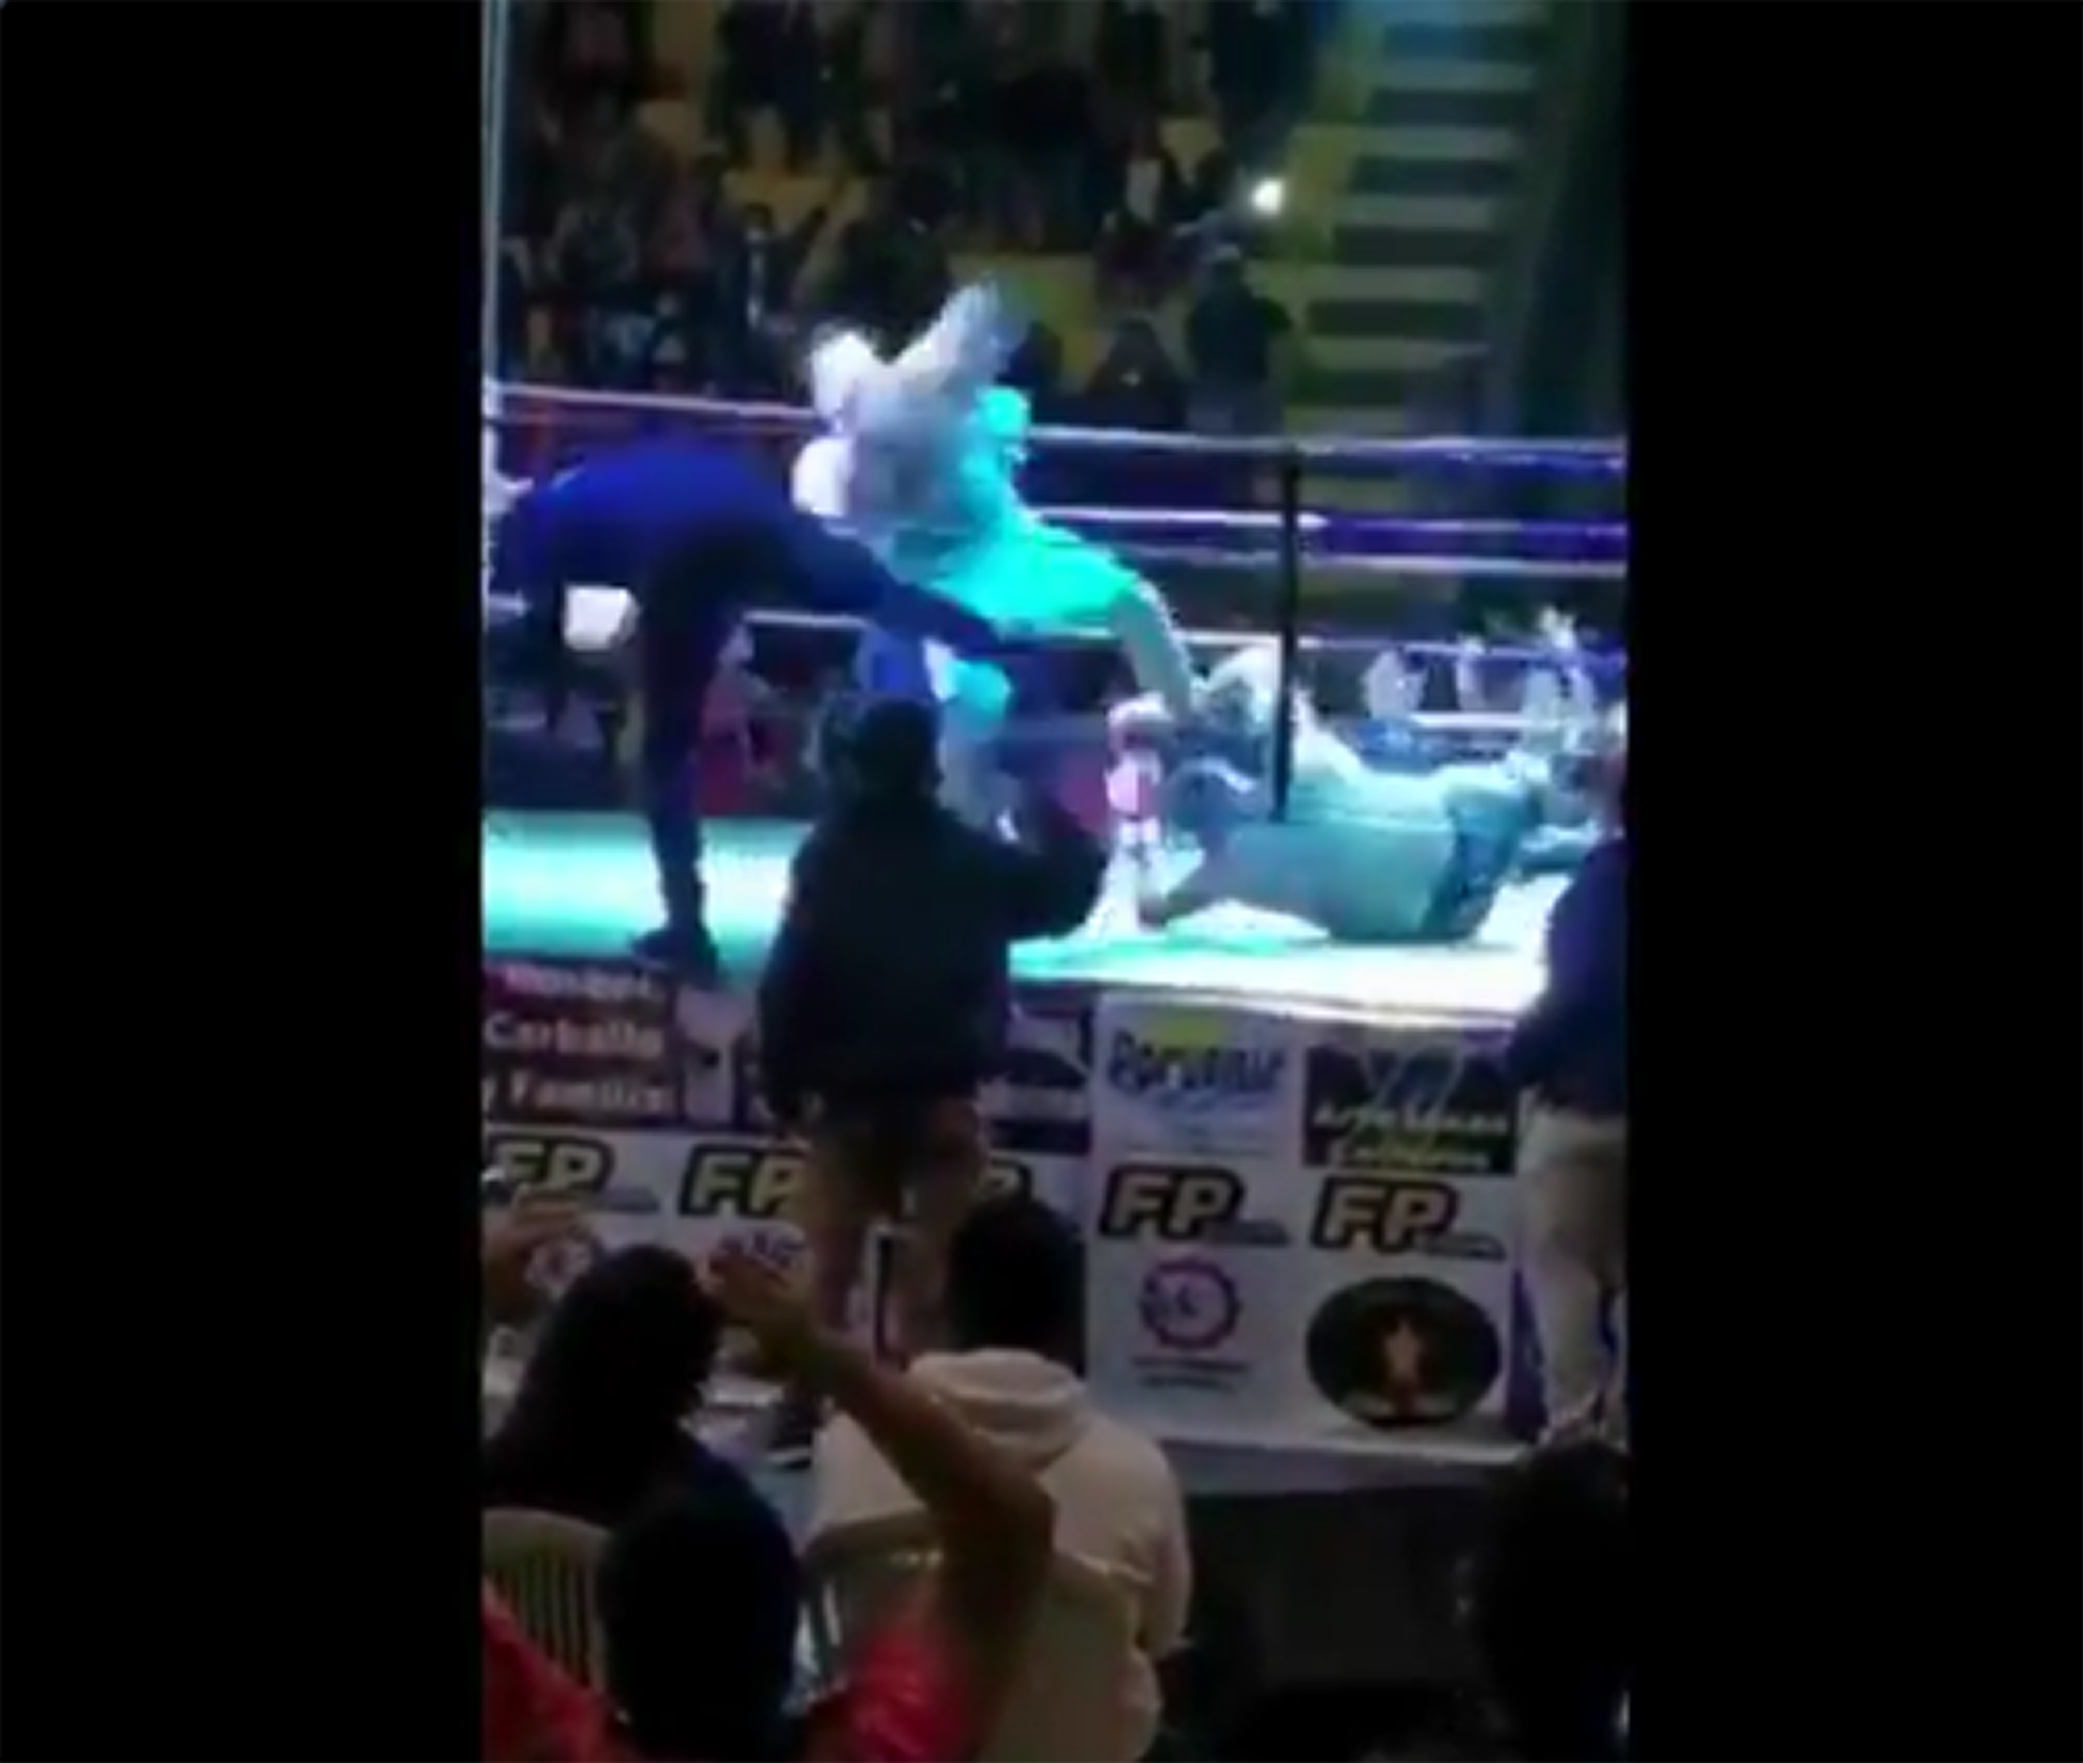 Pedro Tabares stomps on Saul Farah's head during their boxing match in Bolivia.